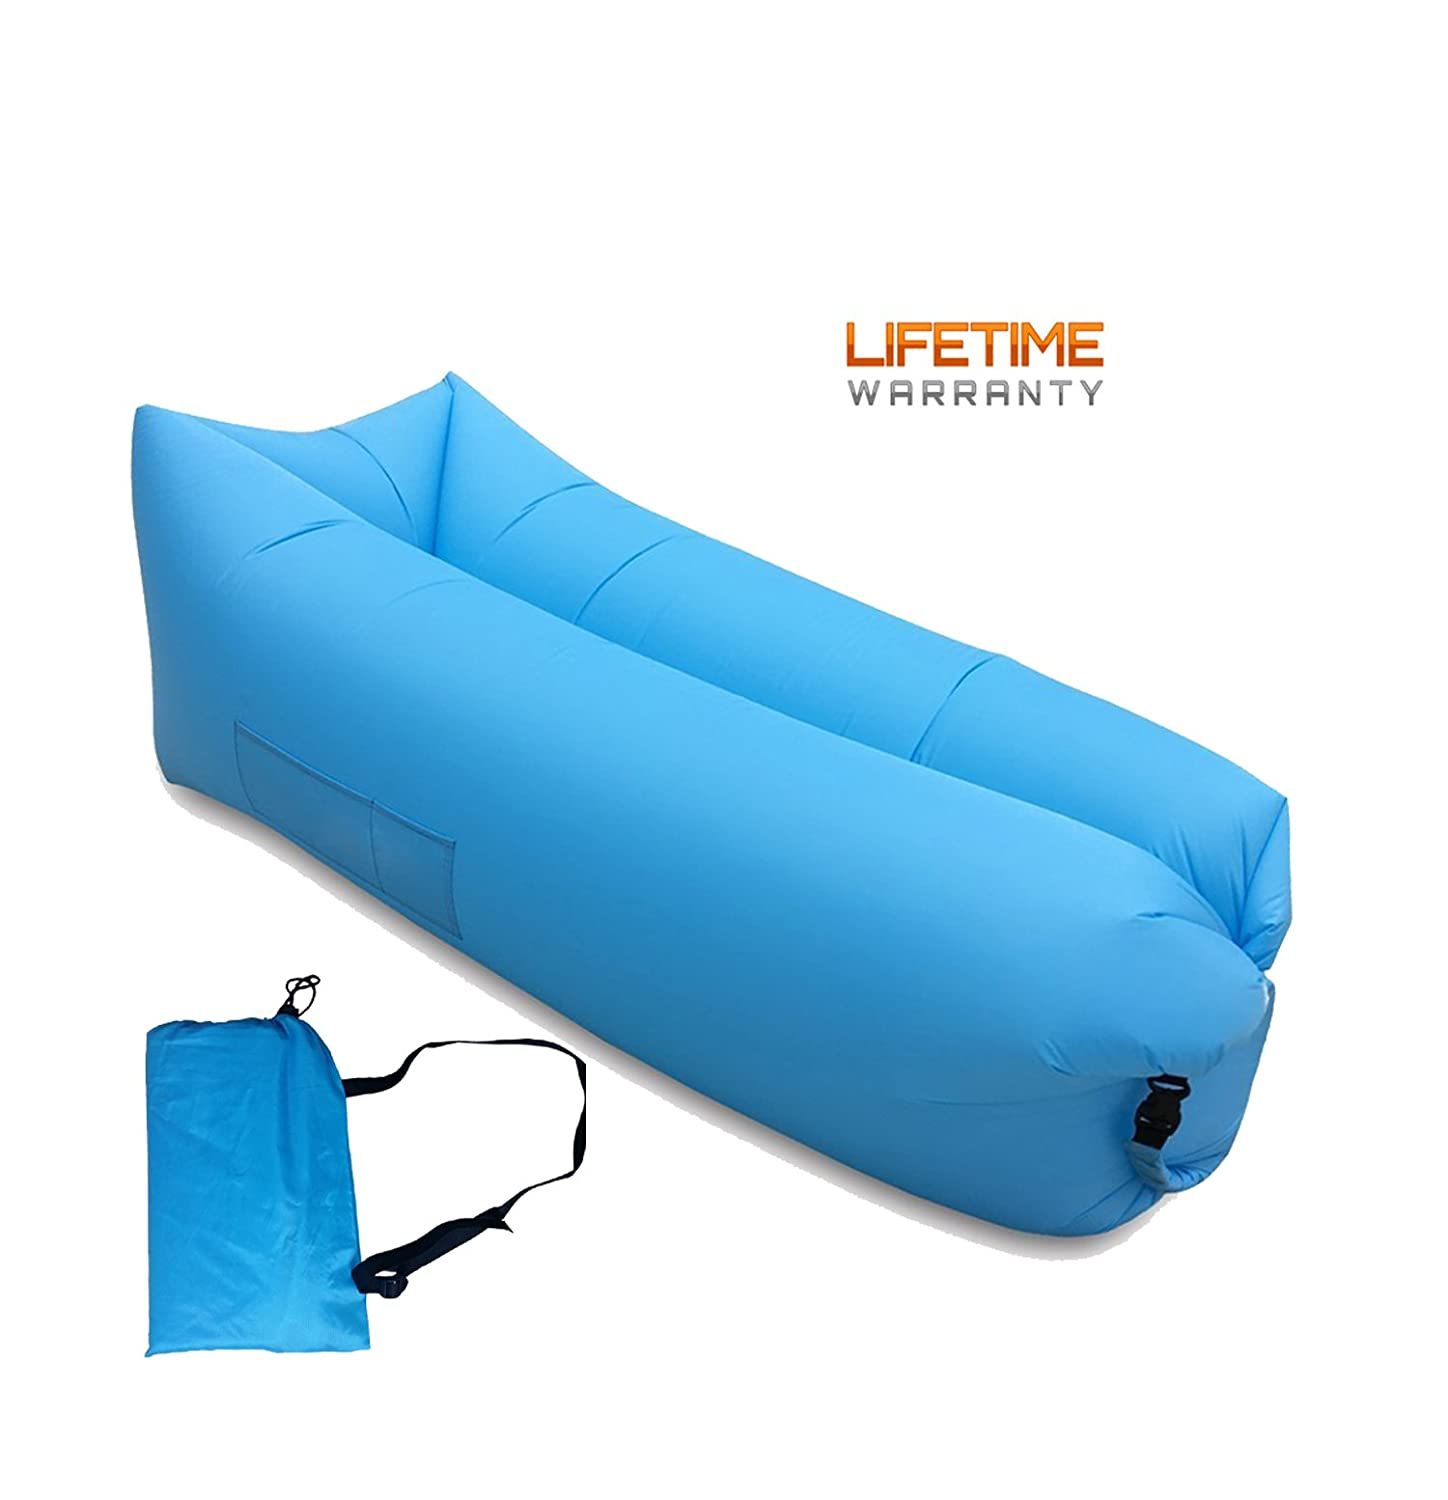 AIWOTOWOW Portable Waterproof Inflatable Air Lounger Lounge Beach Sofa Dream Chair